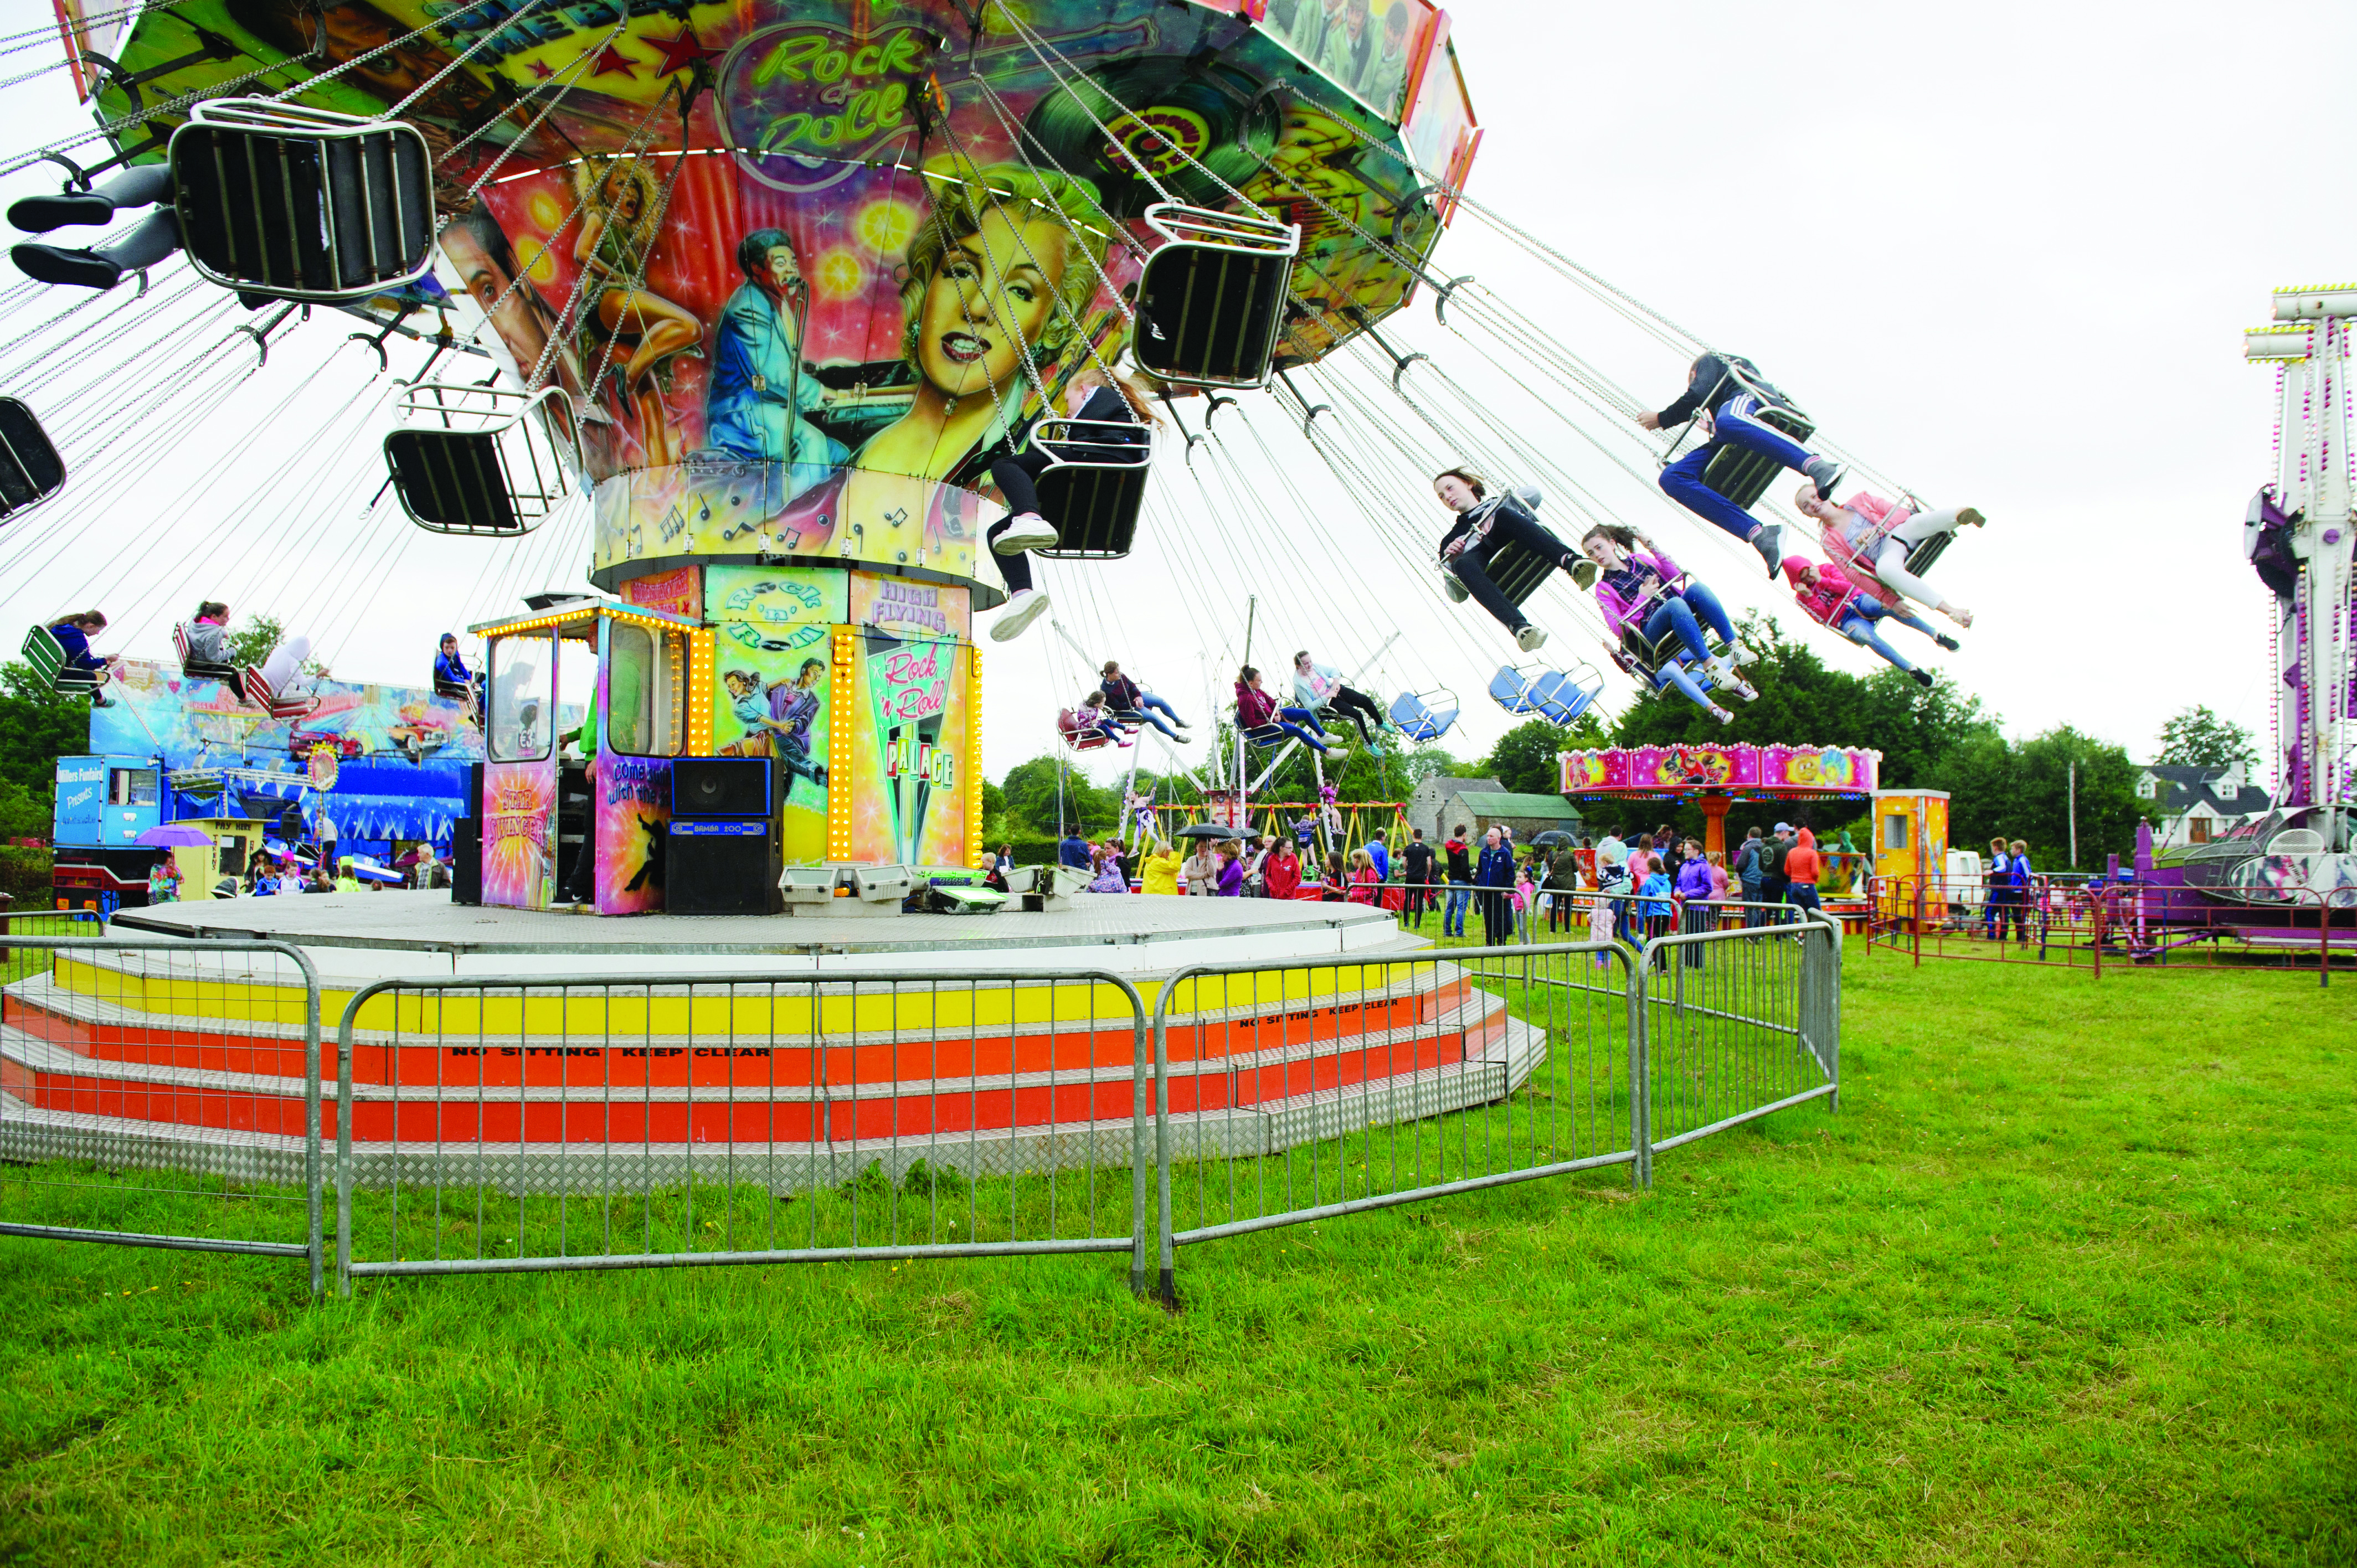 The Star Swinger fairground ride at the Carrickroe Welcome Home Festival. ©Rory Geary/The Northern Standard